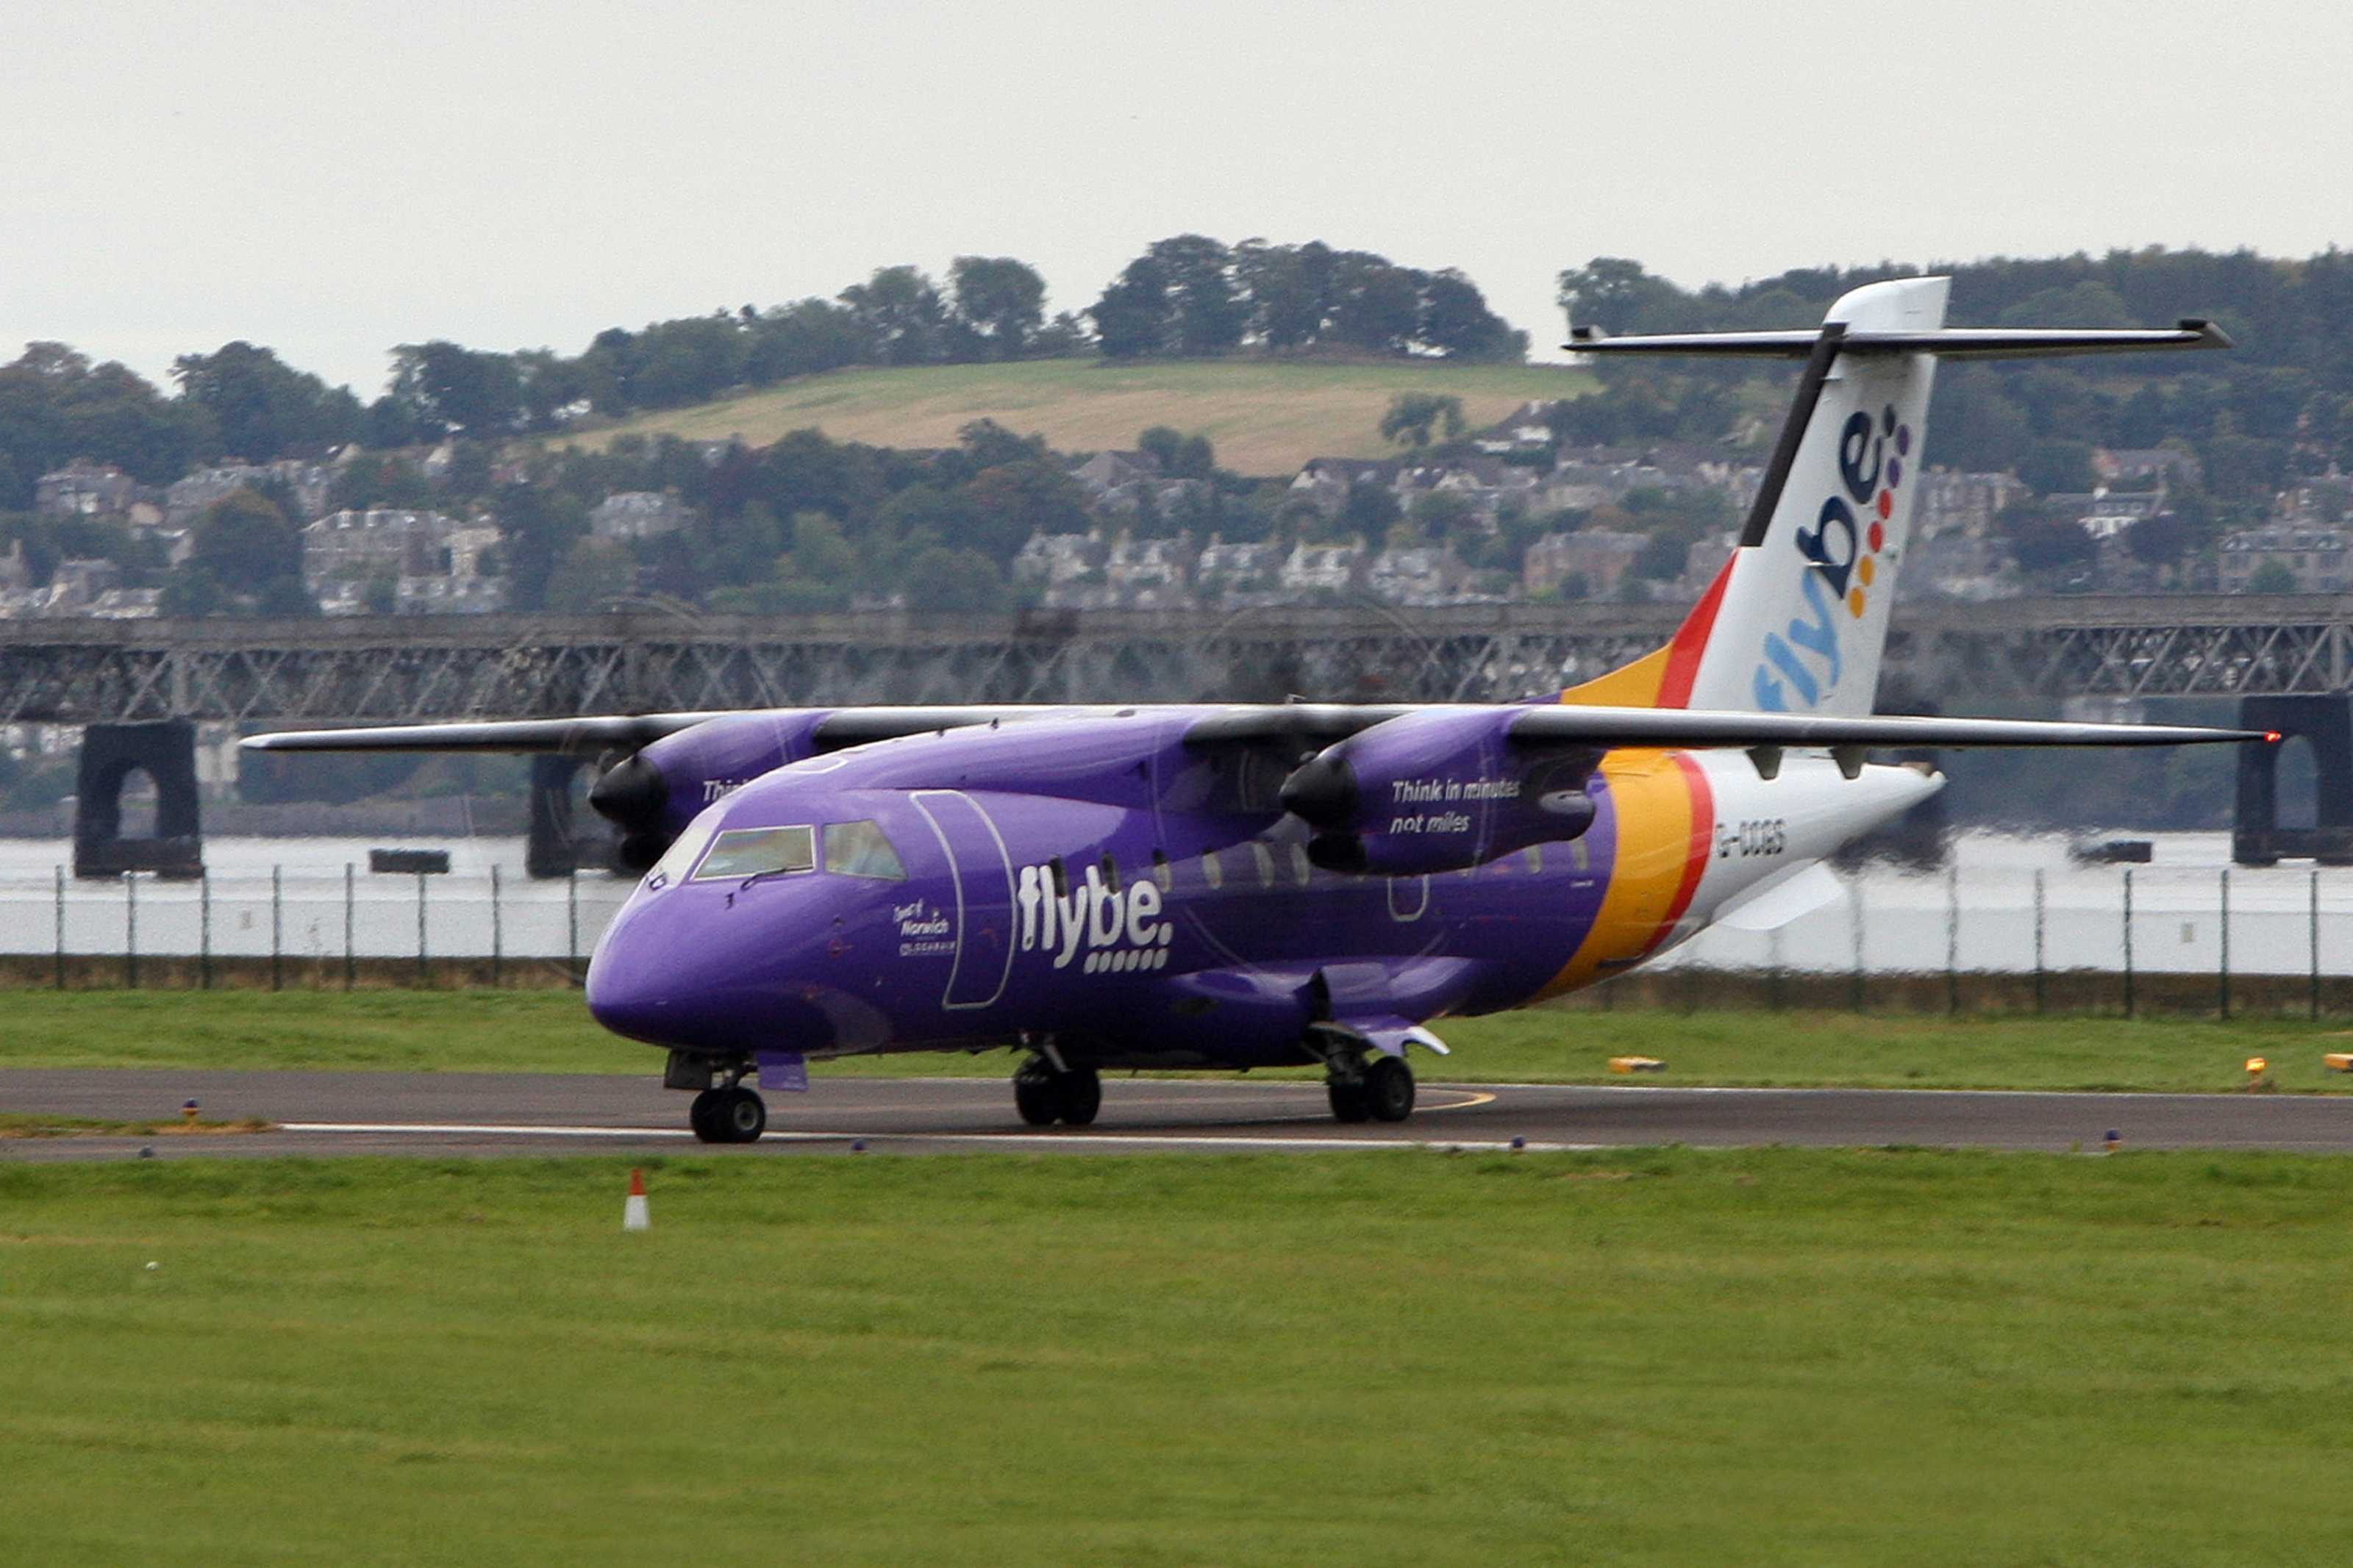 A Flybe plane at Dundee airport.